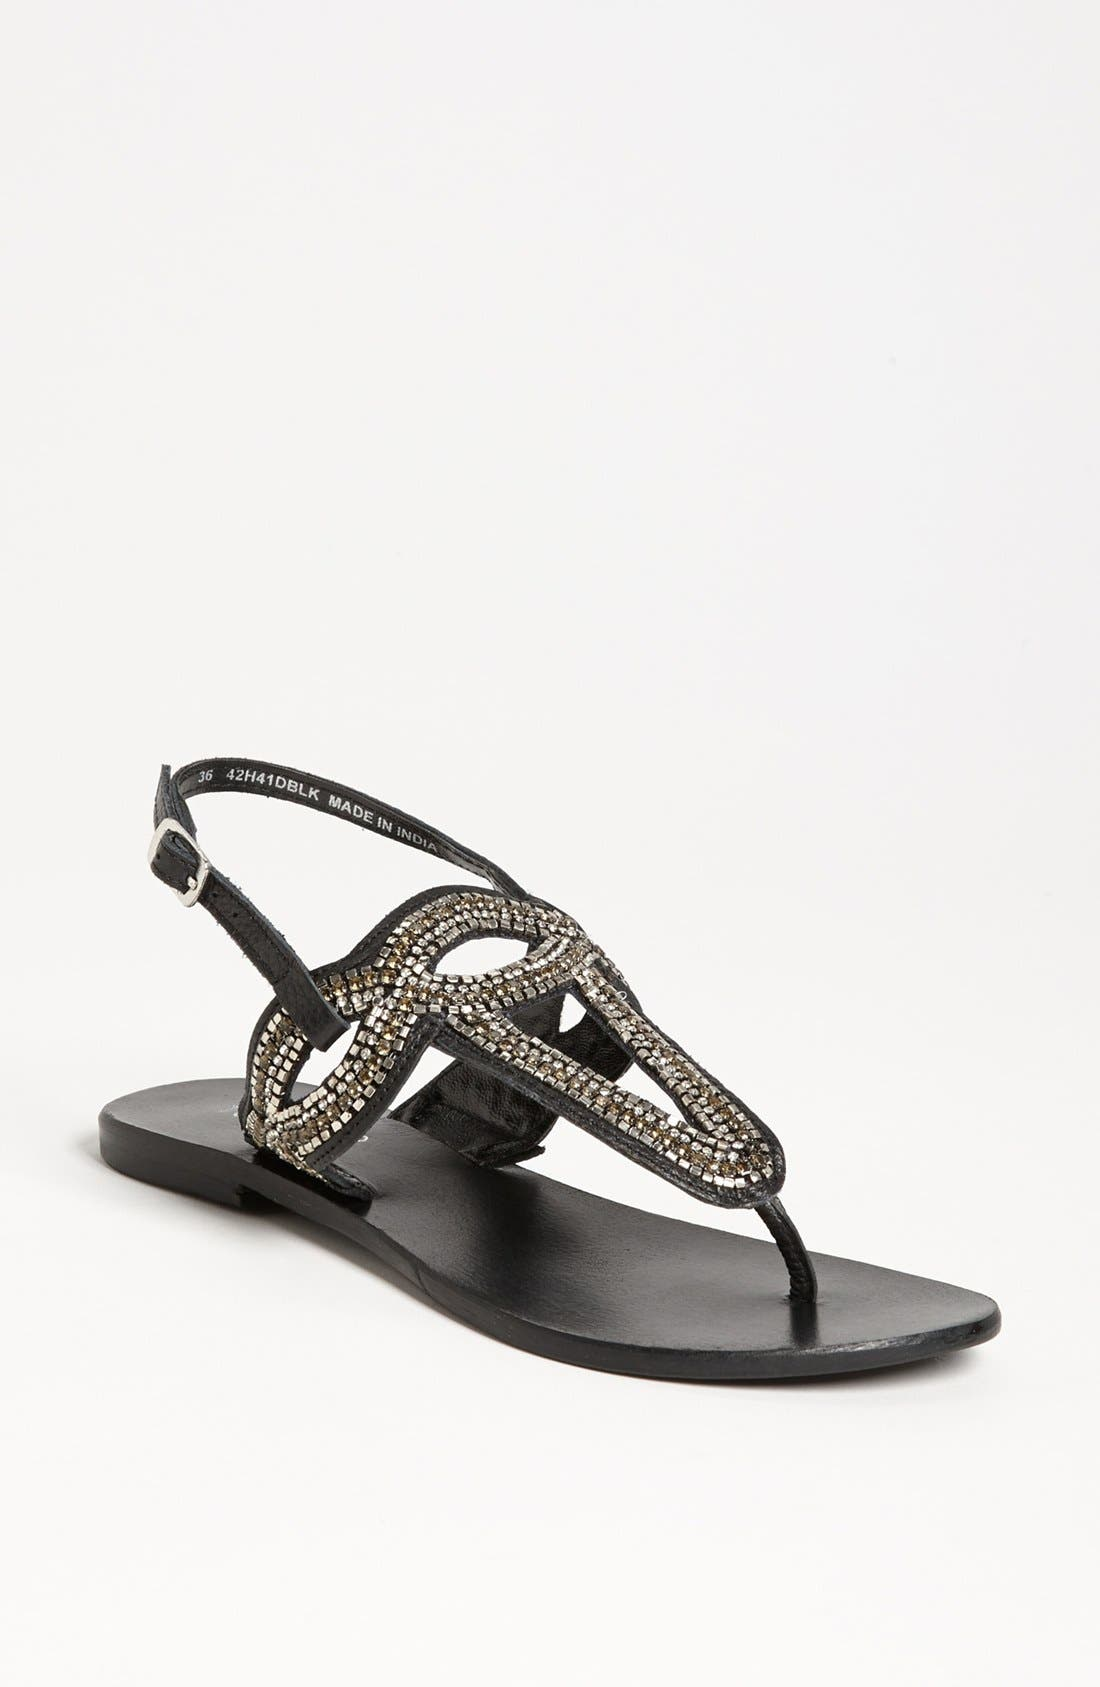 Alternate Image 1 Selected - Topshop 'Hectic' Sandal